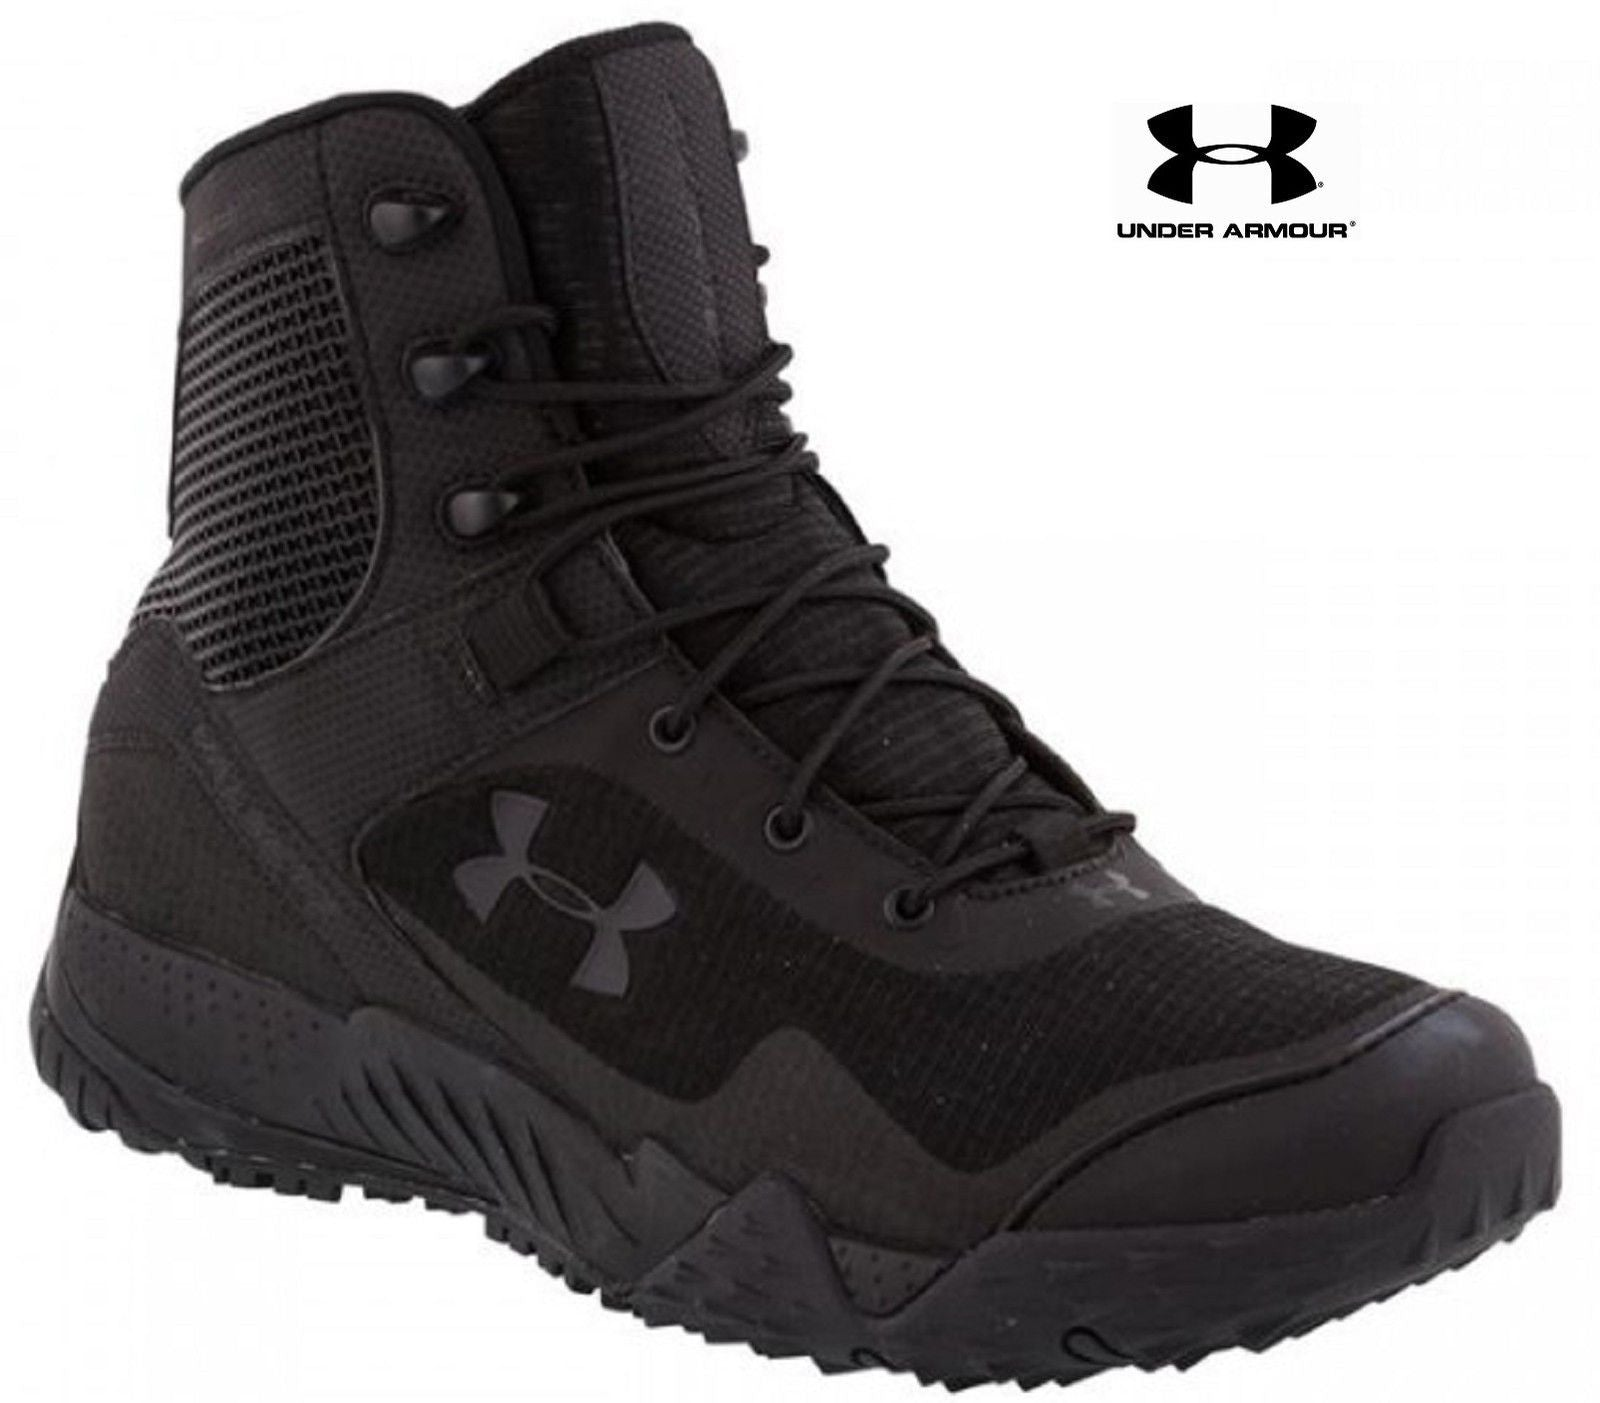 4622682dc05 Under Armour Valsetz RTS Tactical Boot - Men's UA All-Terrain ...